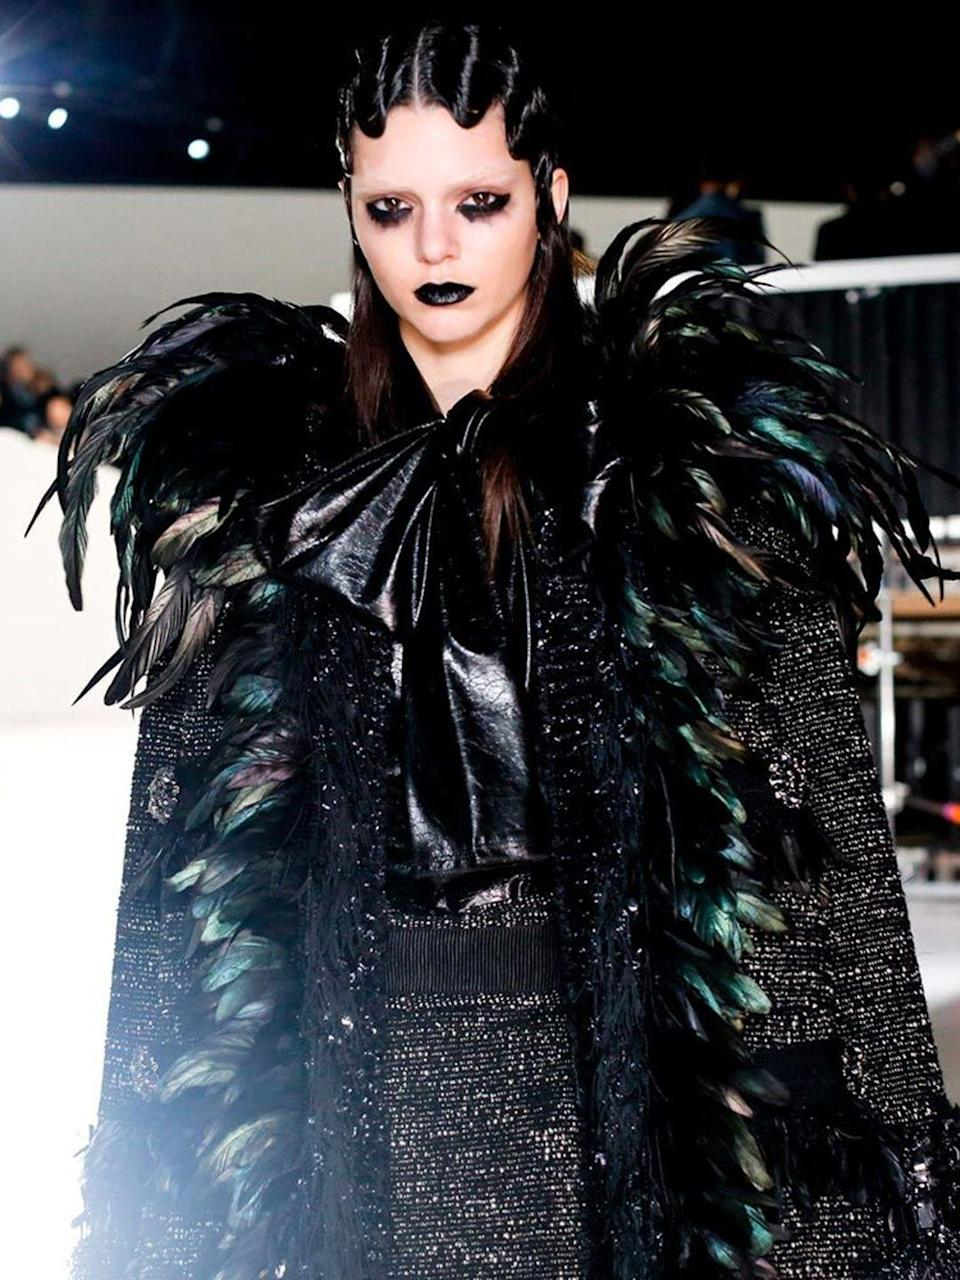 <p>Kendall Jenner backstage at Marc Jacobs during New York Fashion Week, February 2016.</p>